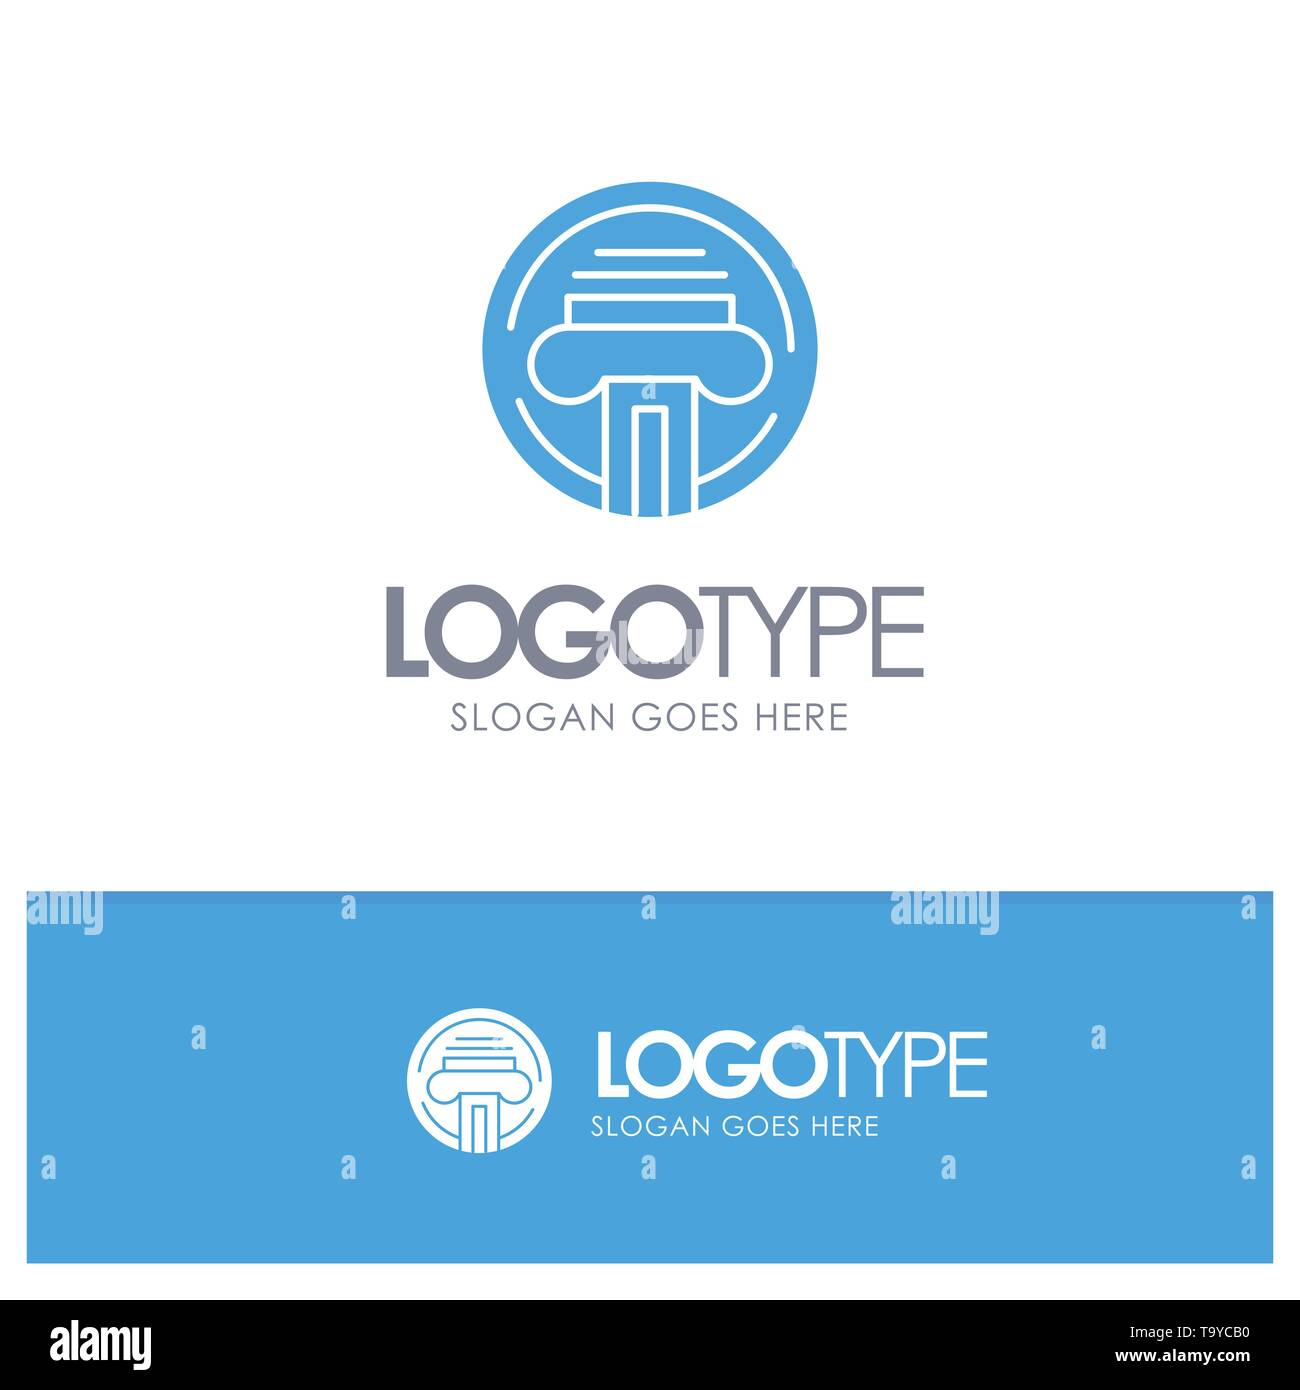 Printer, Type, Typewriter, Writer Blue Solid Logo with place for tagline Stock Vector